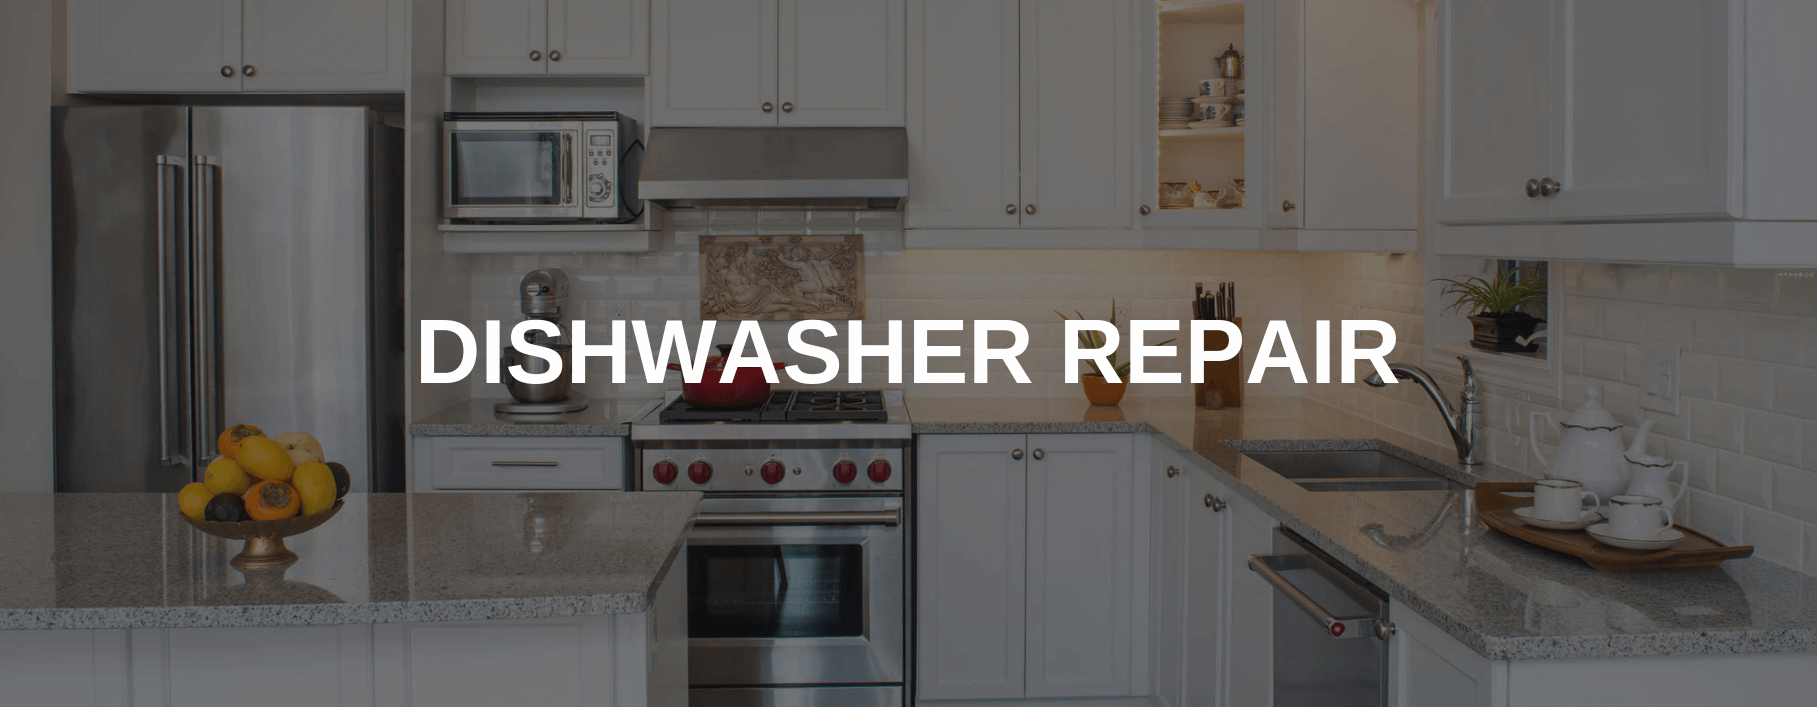 dishwasher repair orange